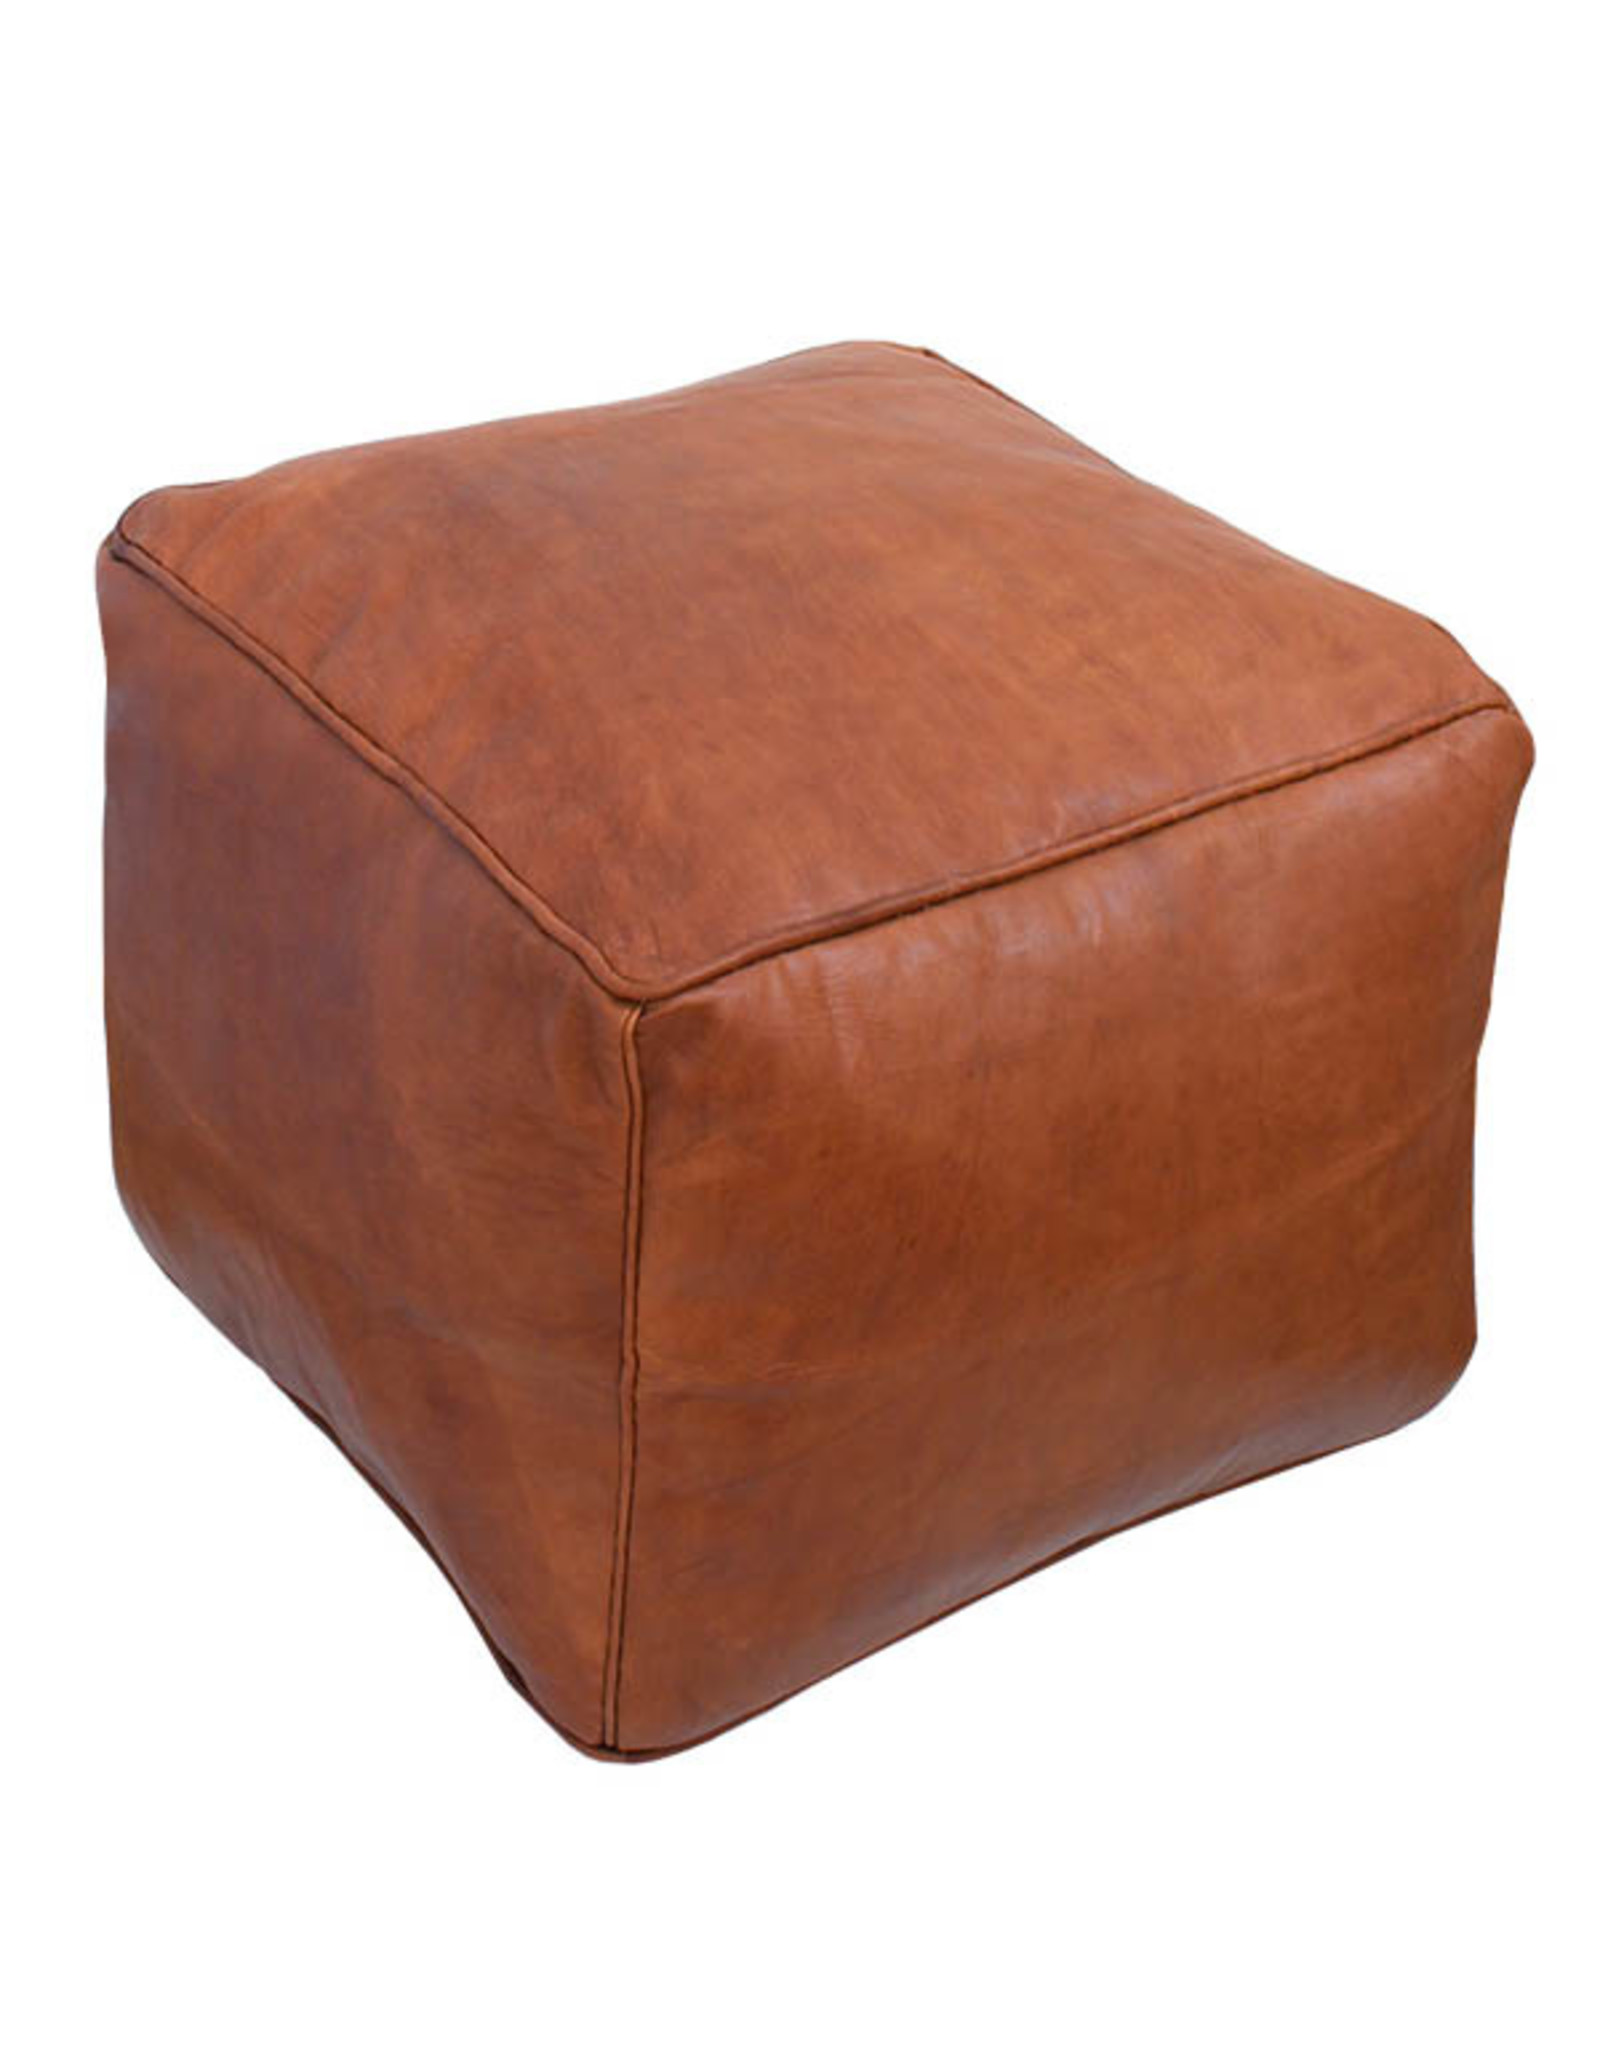 Square Leather Pouf - Cognac